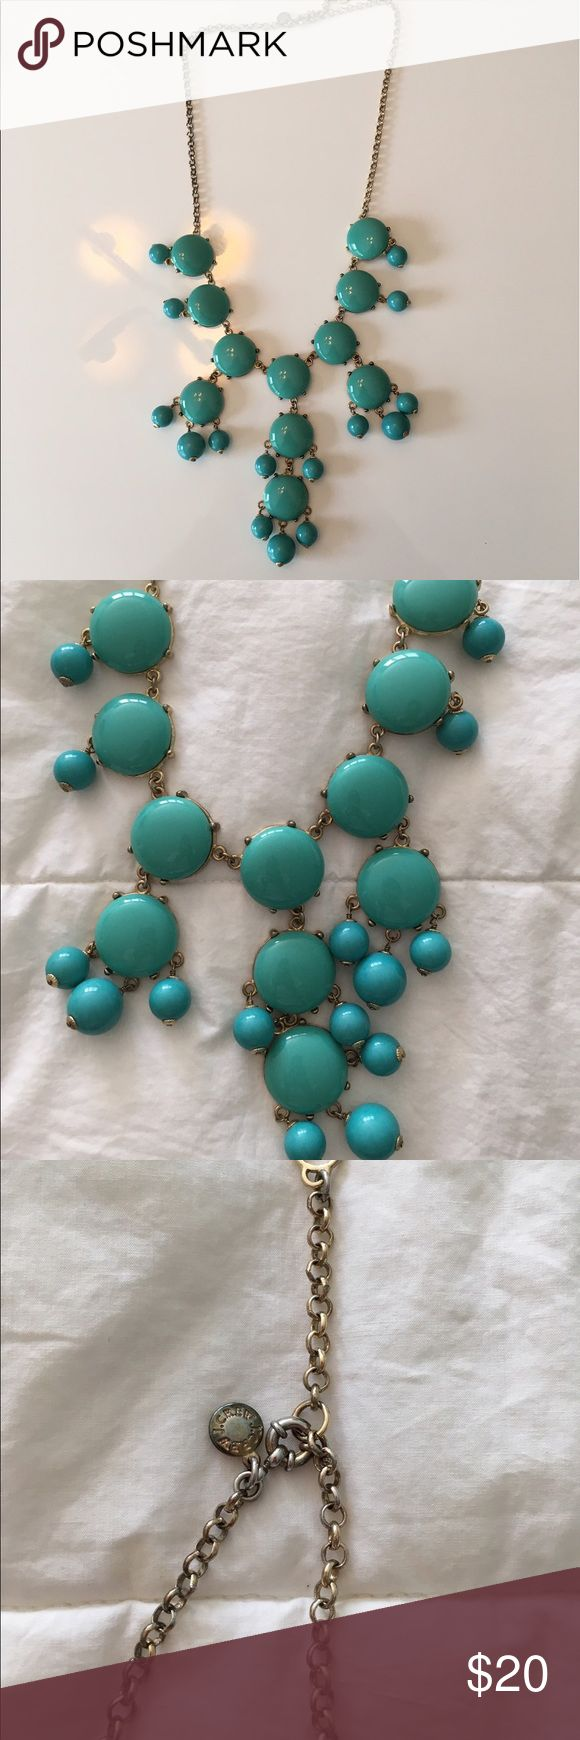 Jcrew retail turquoise bubble necklace The original statement necklace!  Retail jcrew bubble necklace in turquoise. Beautiful color, beautiful necklace!  Some rubbing of color on chain, most noticeable along back of neck as pictured. J. Crew Jewelry Necklaces